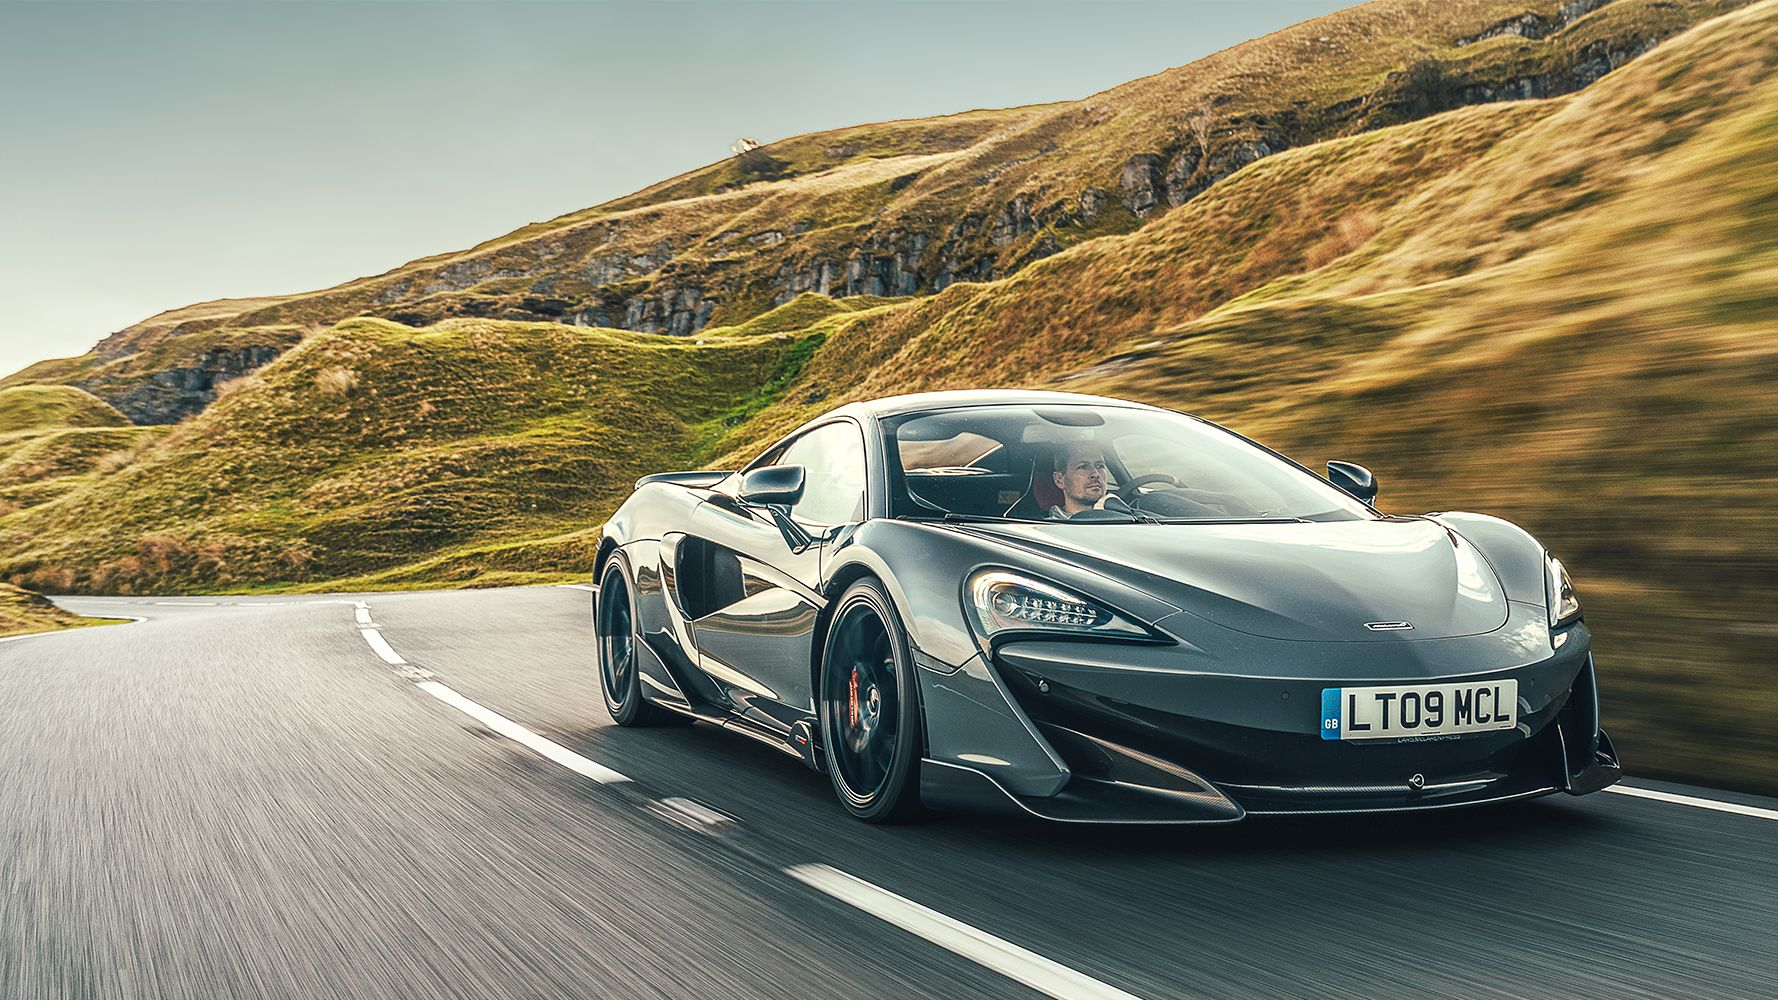 The 2019 600LT Might Be the Best Car McLaren Makes